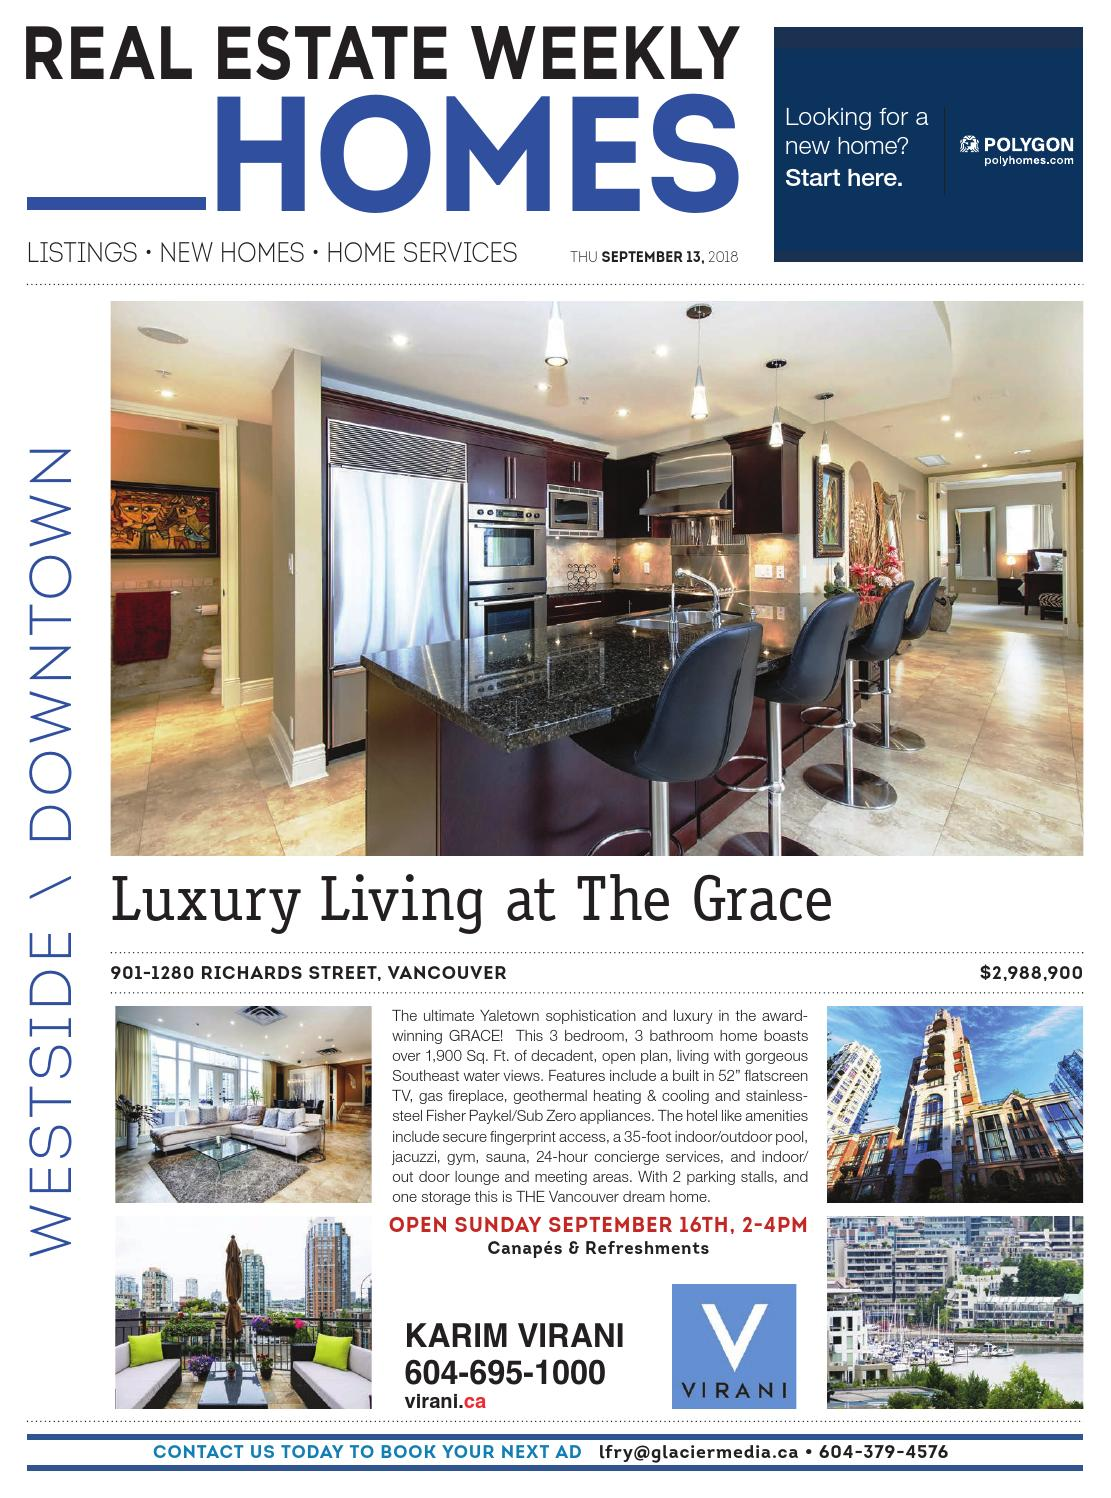 WESTSIDE / DOWNTOWN Sep 13, 2018 Real Estate Weekly by Real Estate on